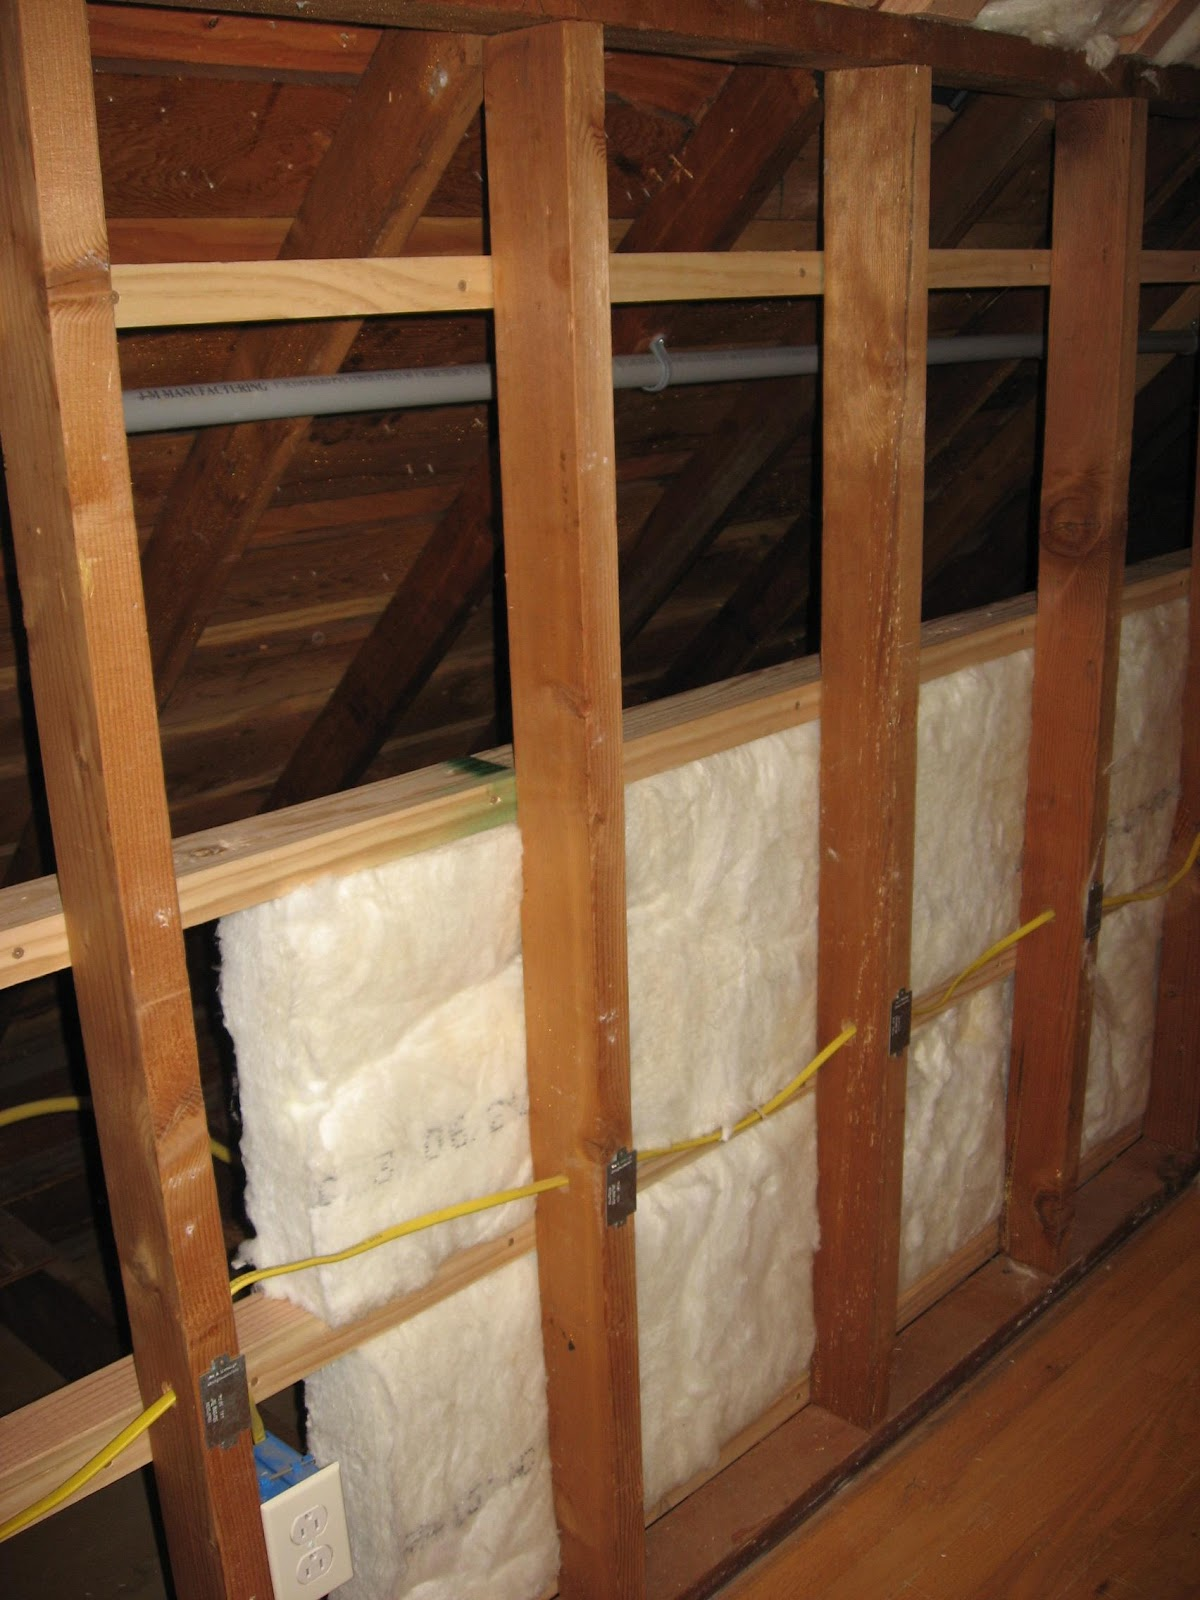 R30 attic walls phillip norman attic access for What insulation to use in 2x6 walls